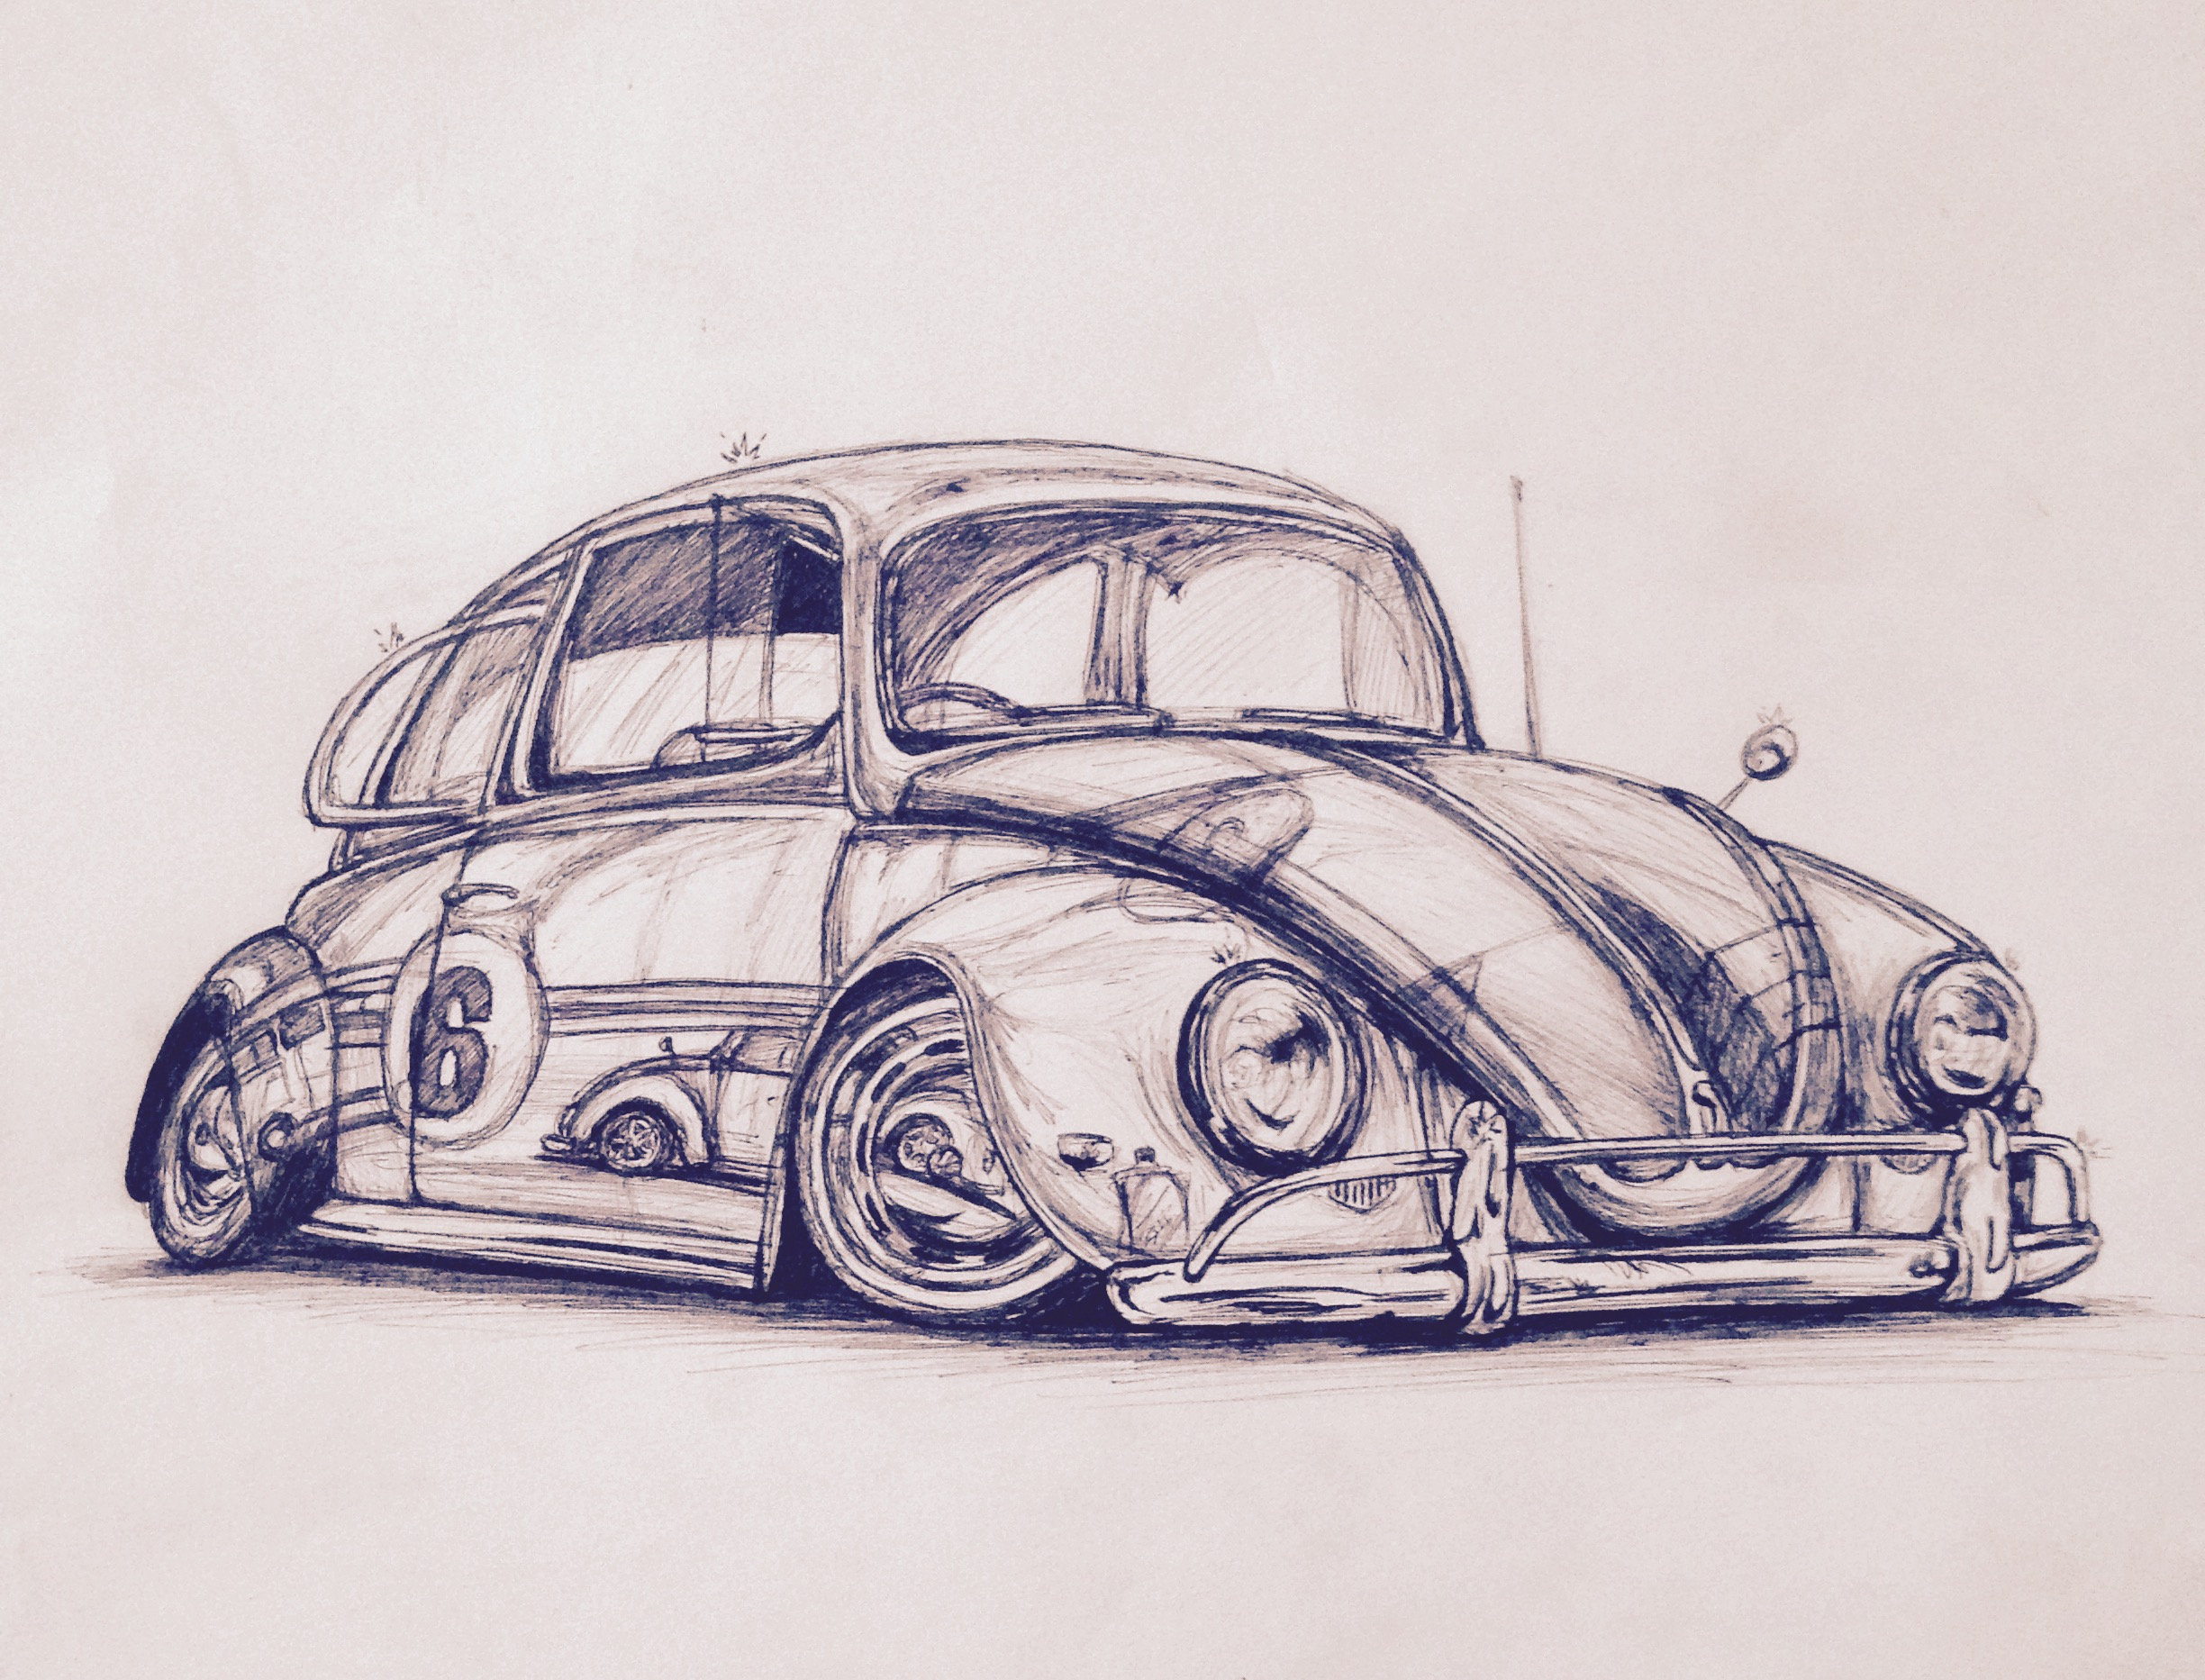 2448x1865 Vw Beetle Drawing Car Drawings Car Drawings